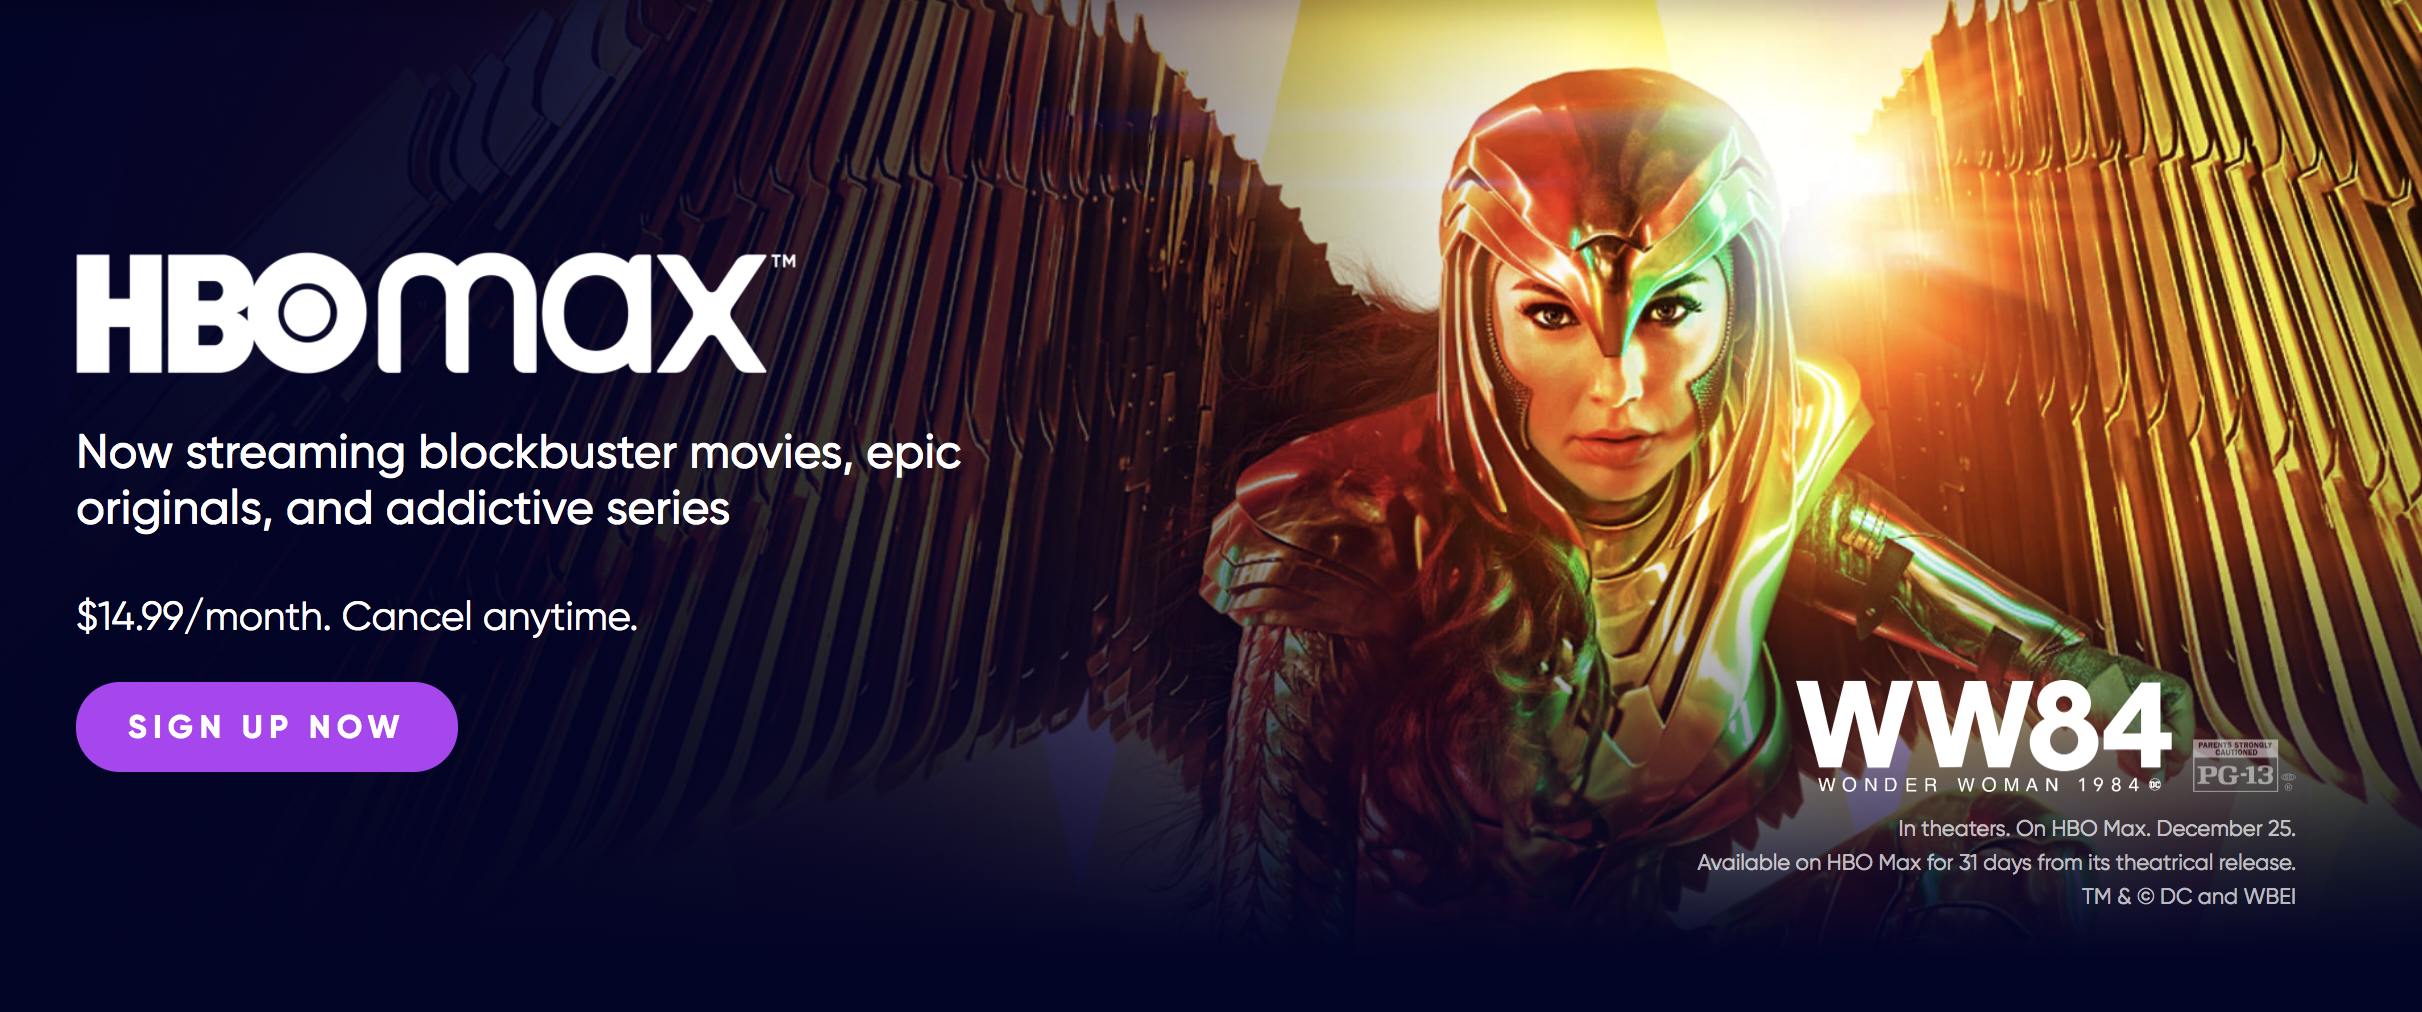 The HBO max banner with an image from Wonder Woman 1984